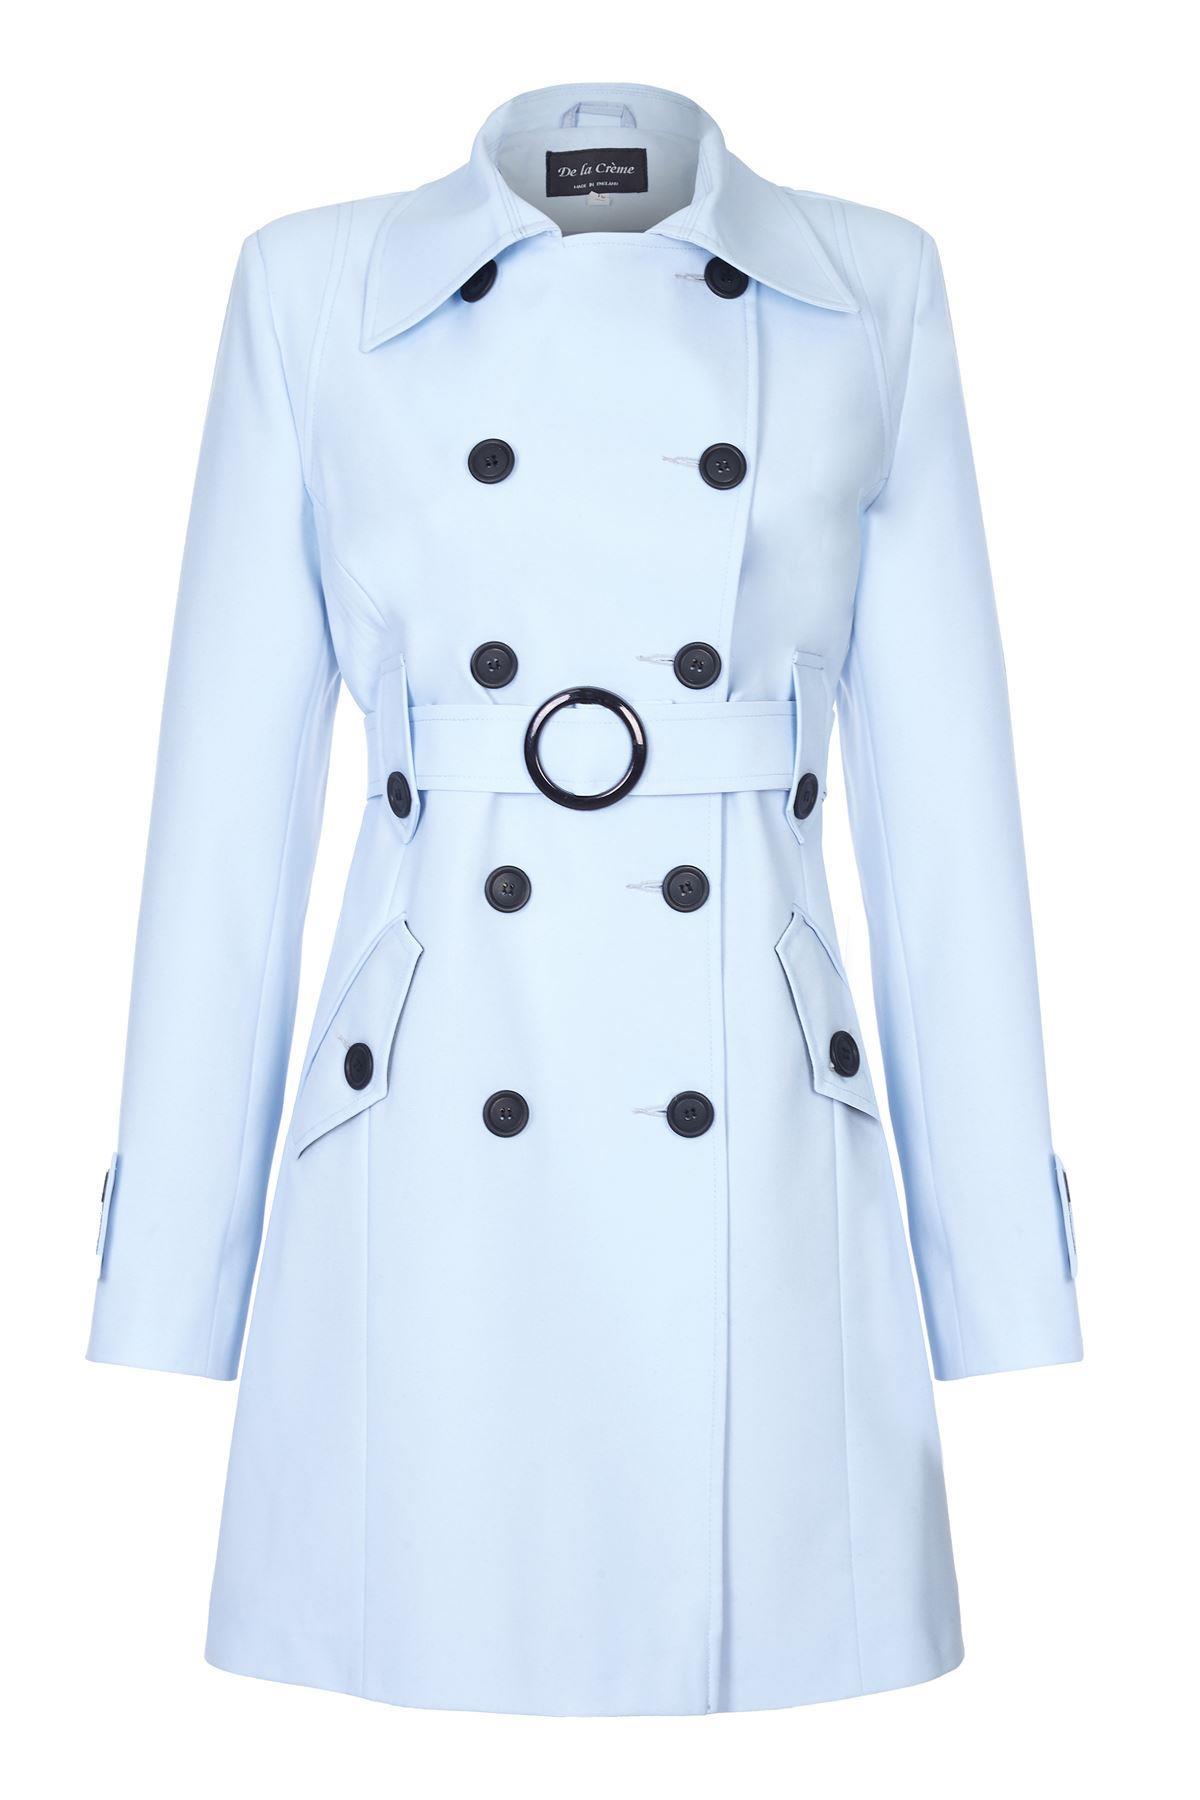 De La Creme - Women`s Spring Belted Trench Coat